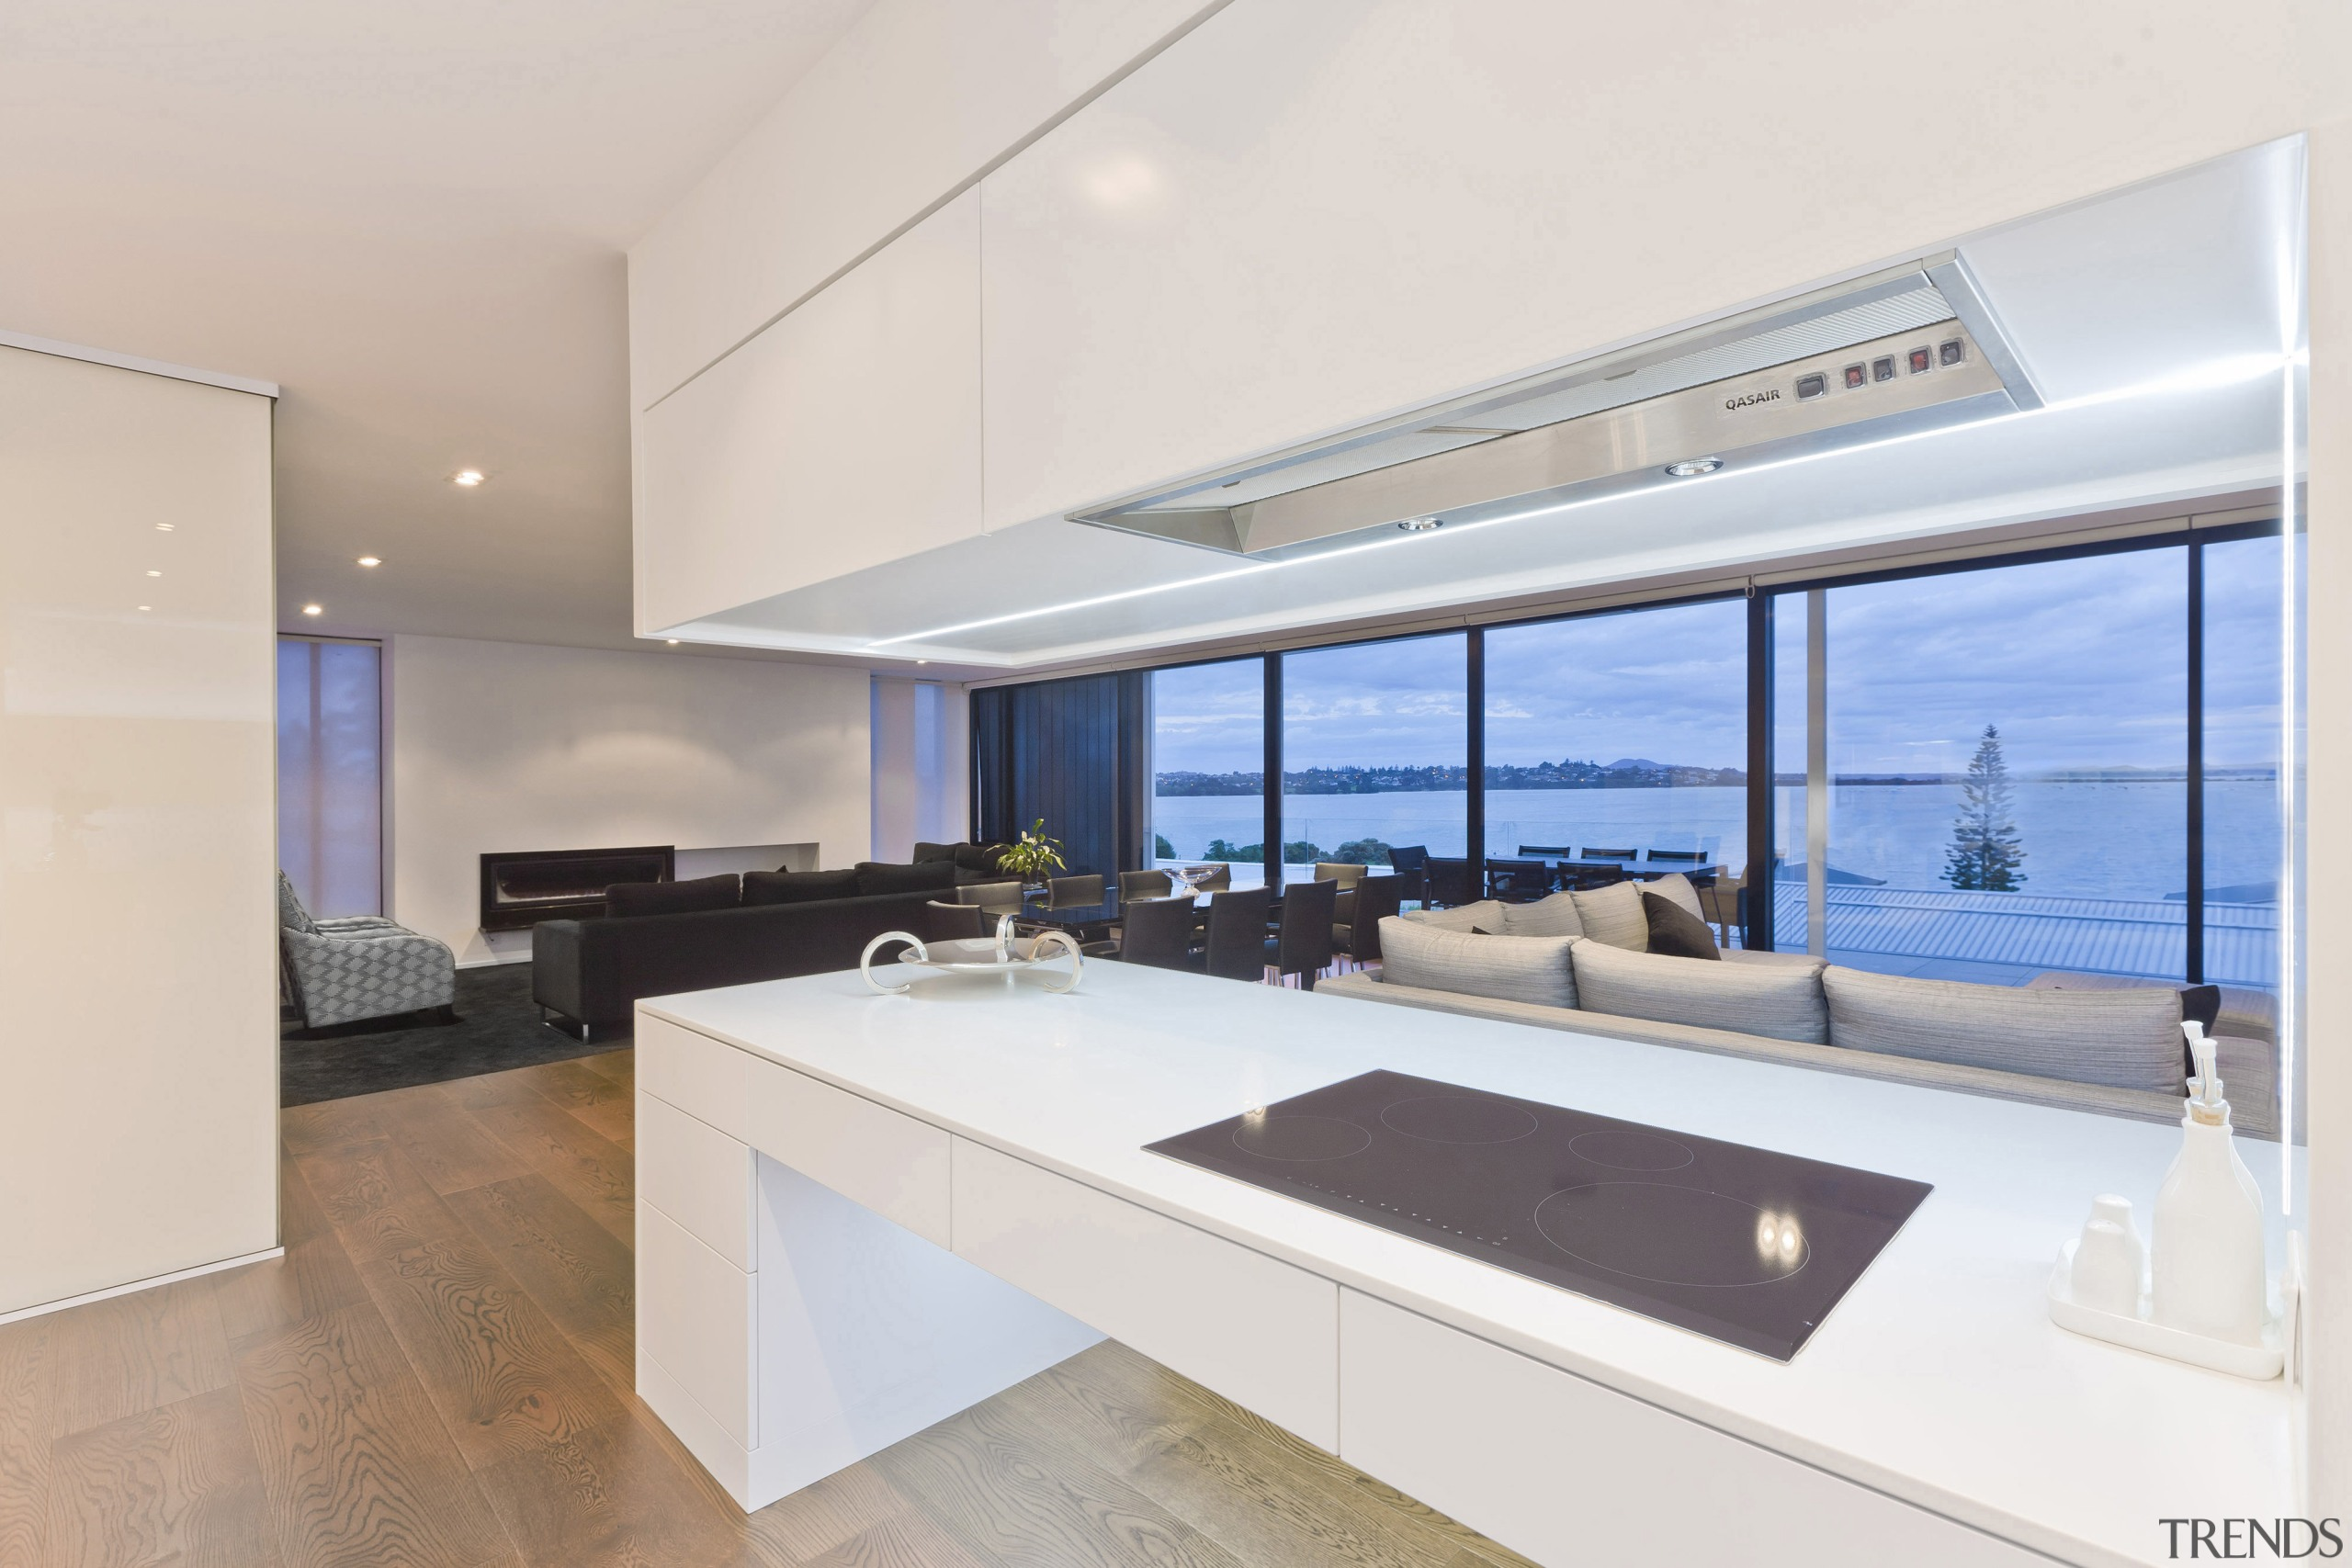 A close up view of the cooktop through architecture, house, interior design, kitchen, penthouse apartment, property, real estate, window, white